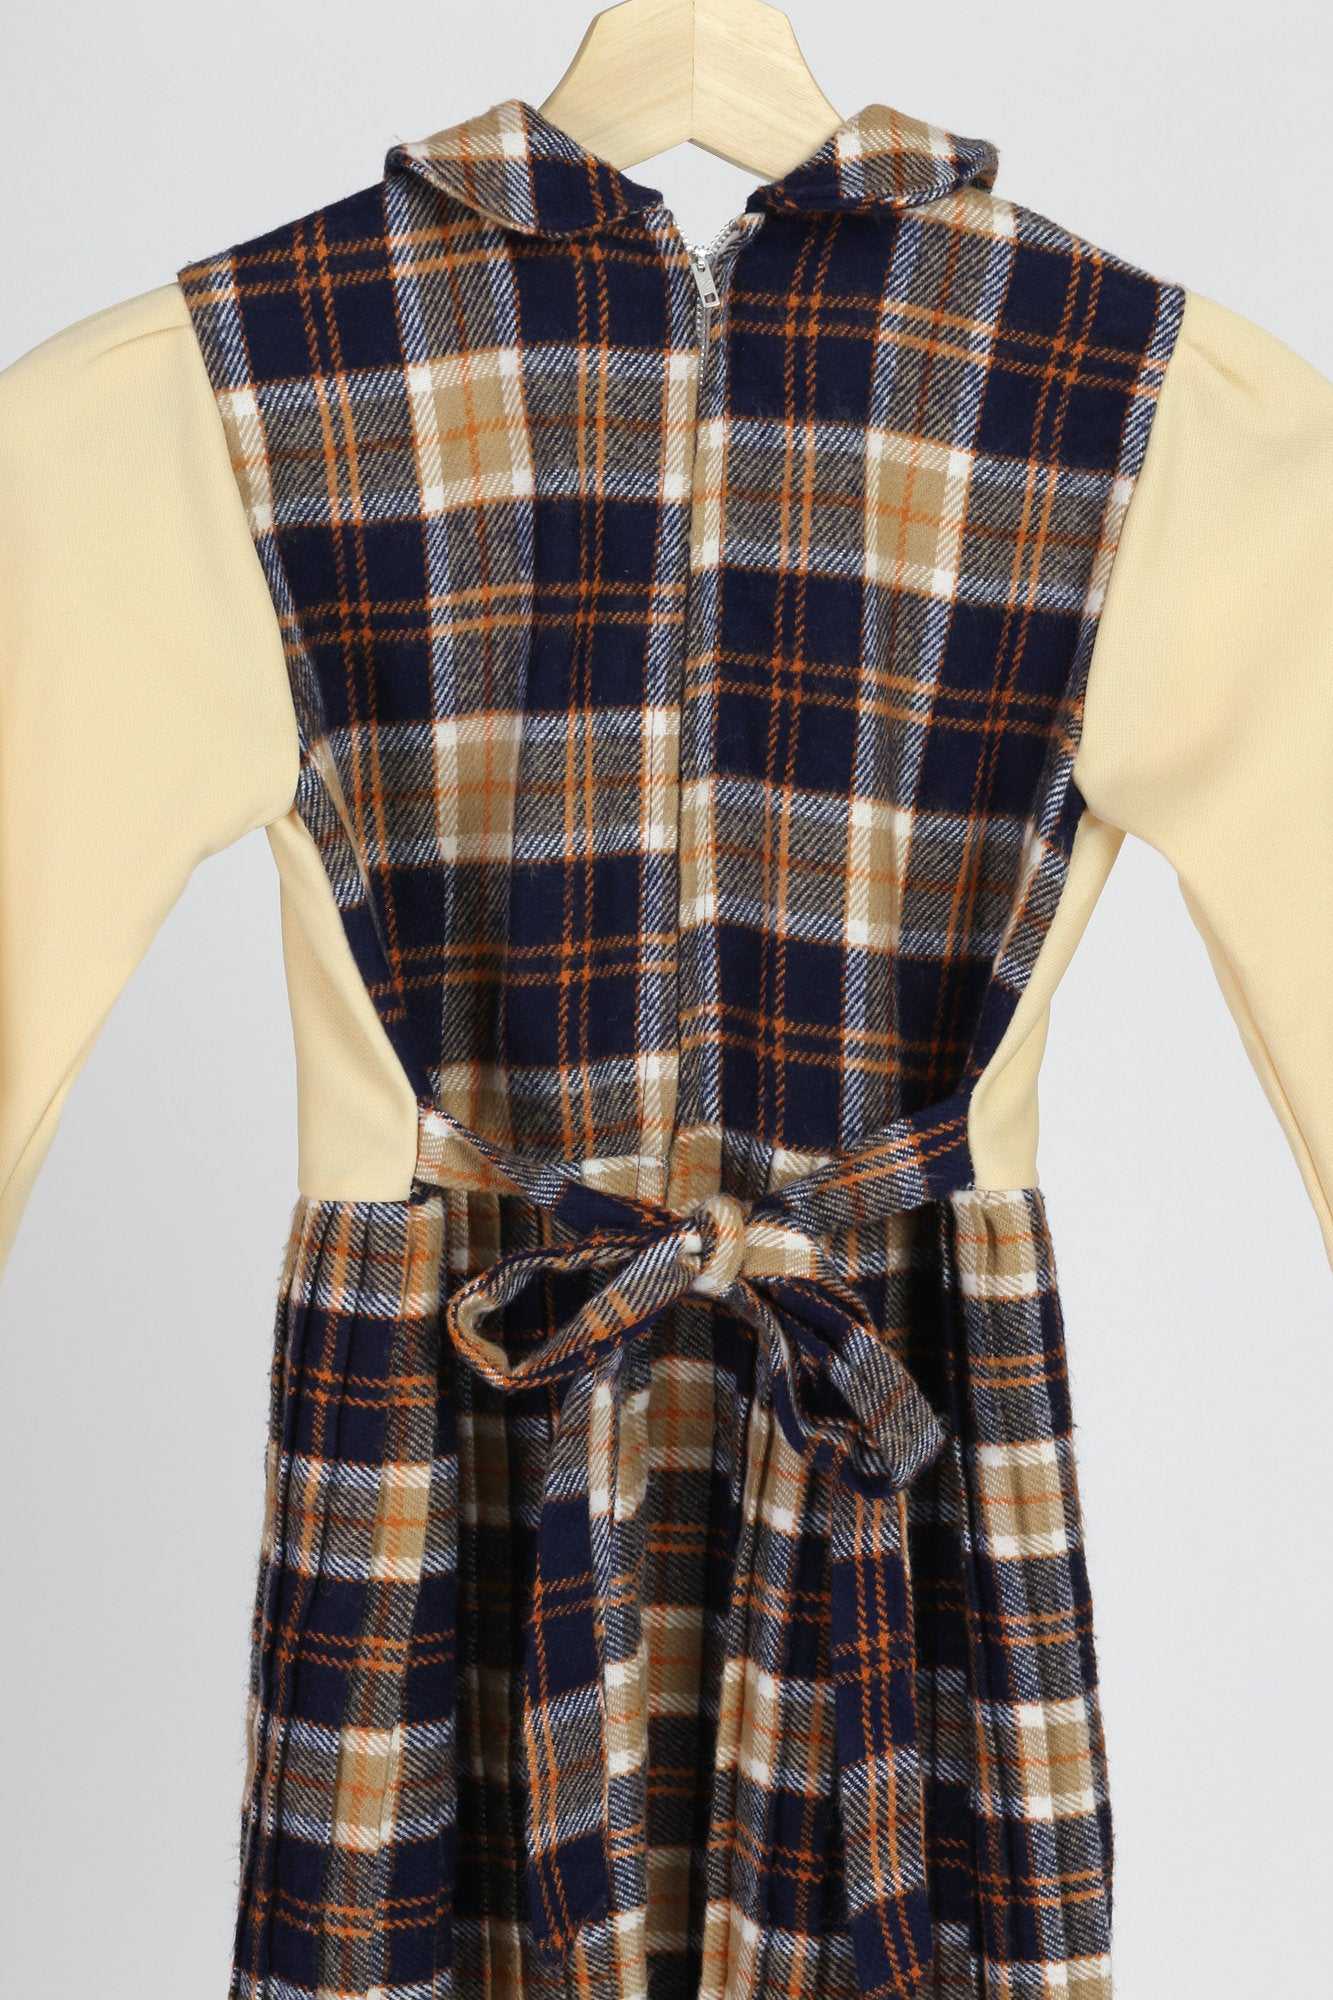 70s Mod Schoolgirl Plaid Dress - Girl's Medium